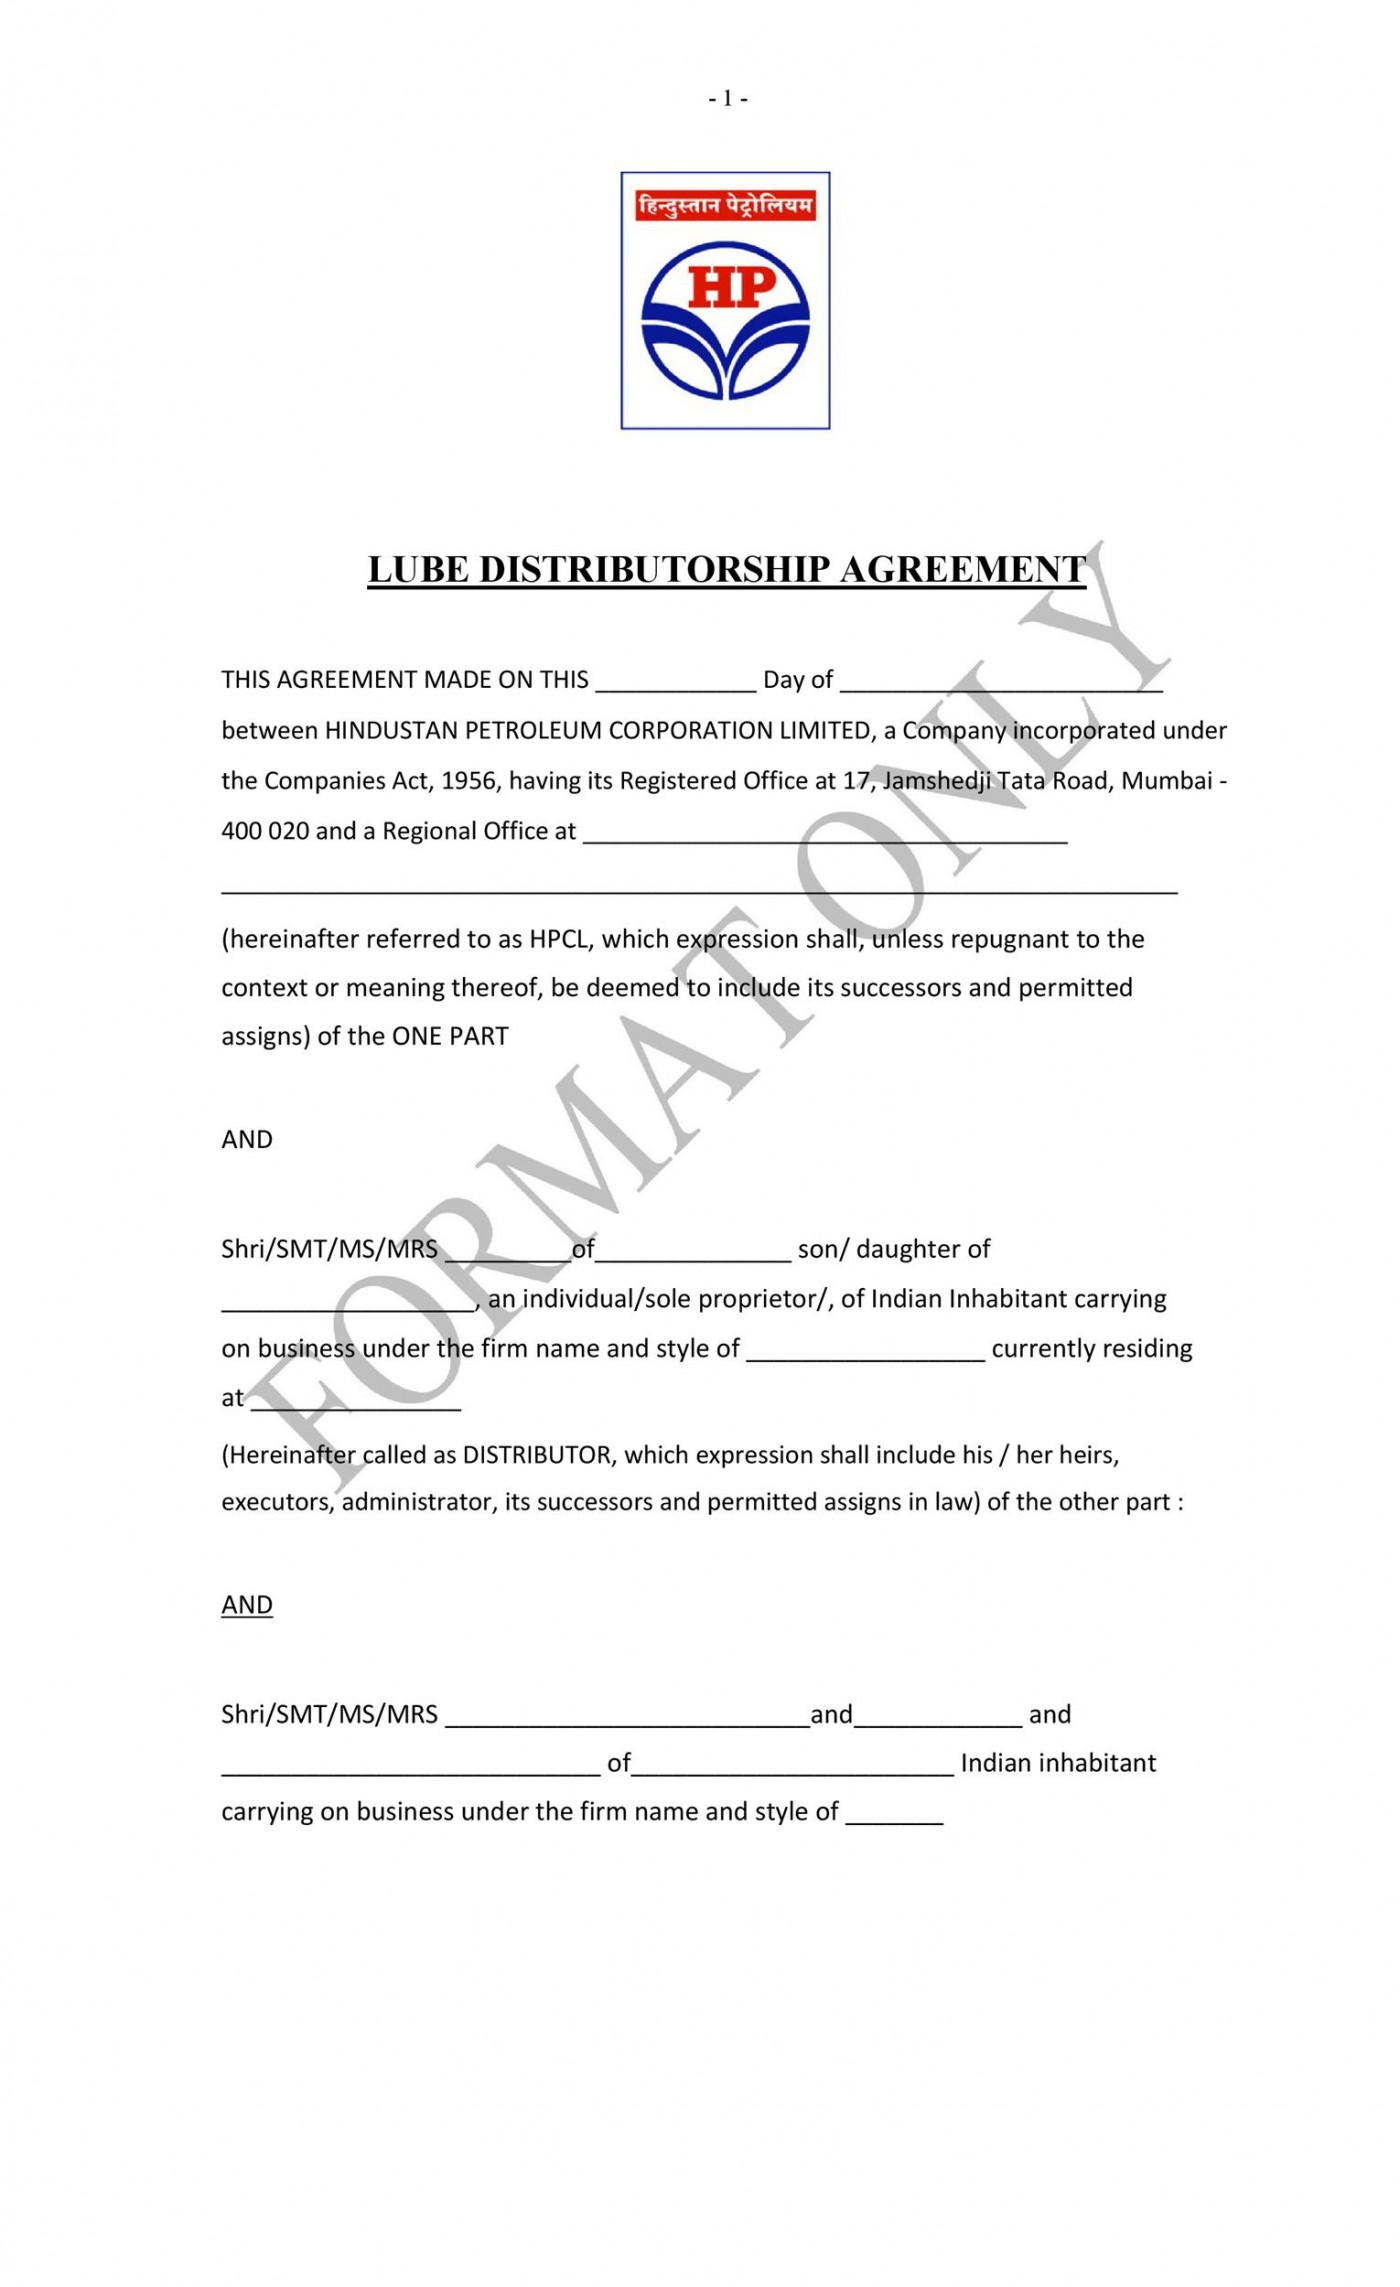 009 Awful Exclusive Distribution Agreement Template Free Download Inspiration 1400